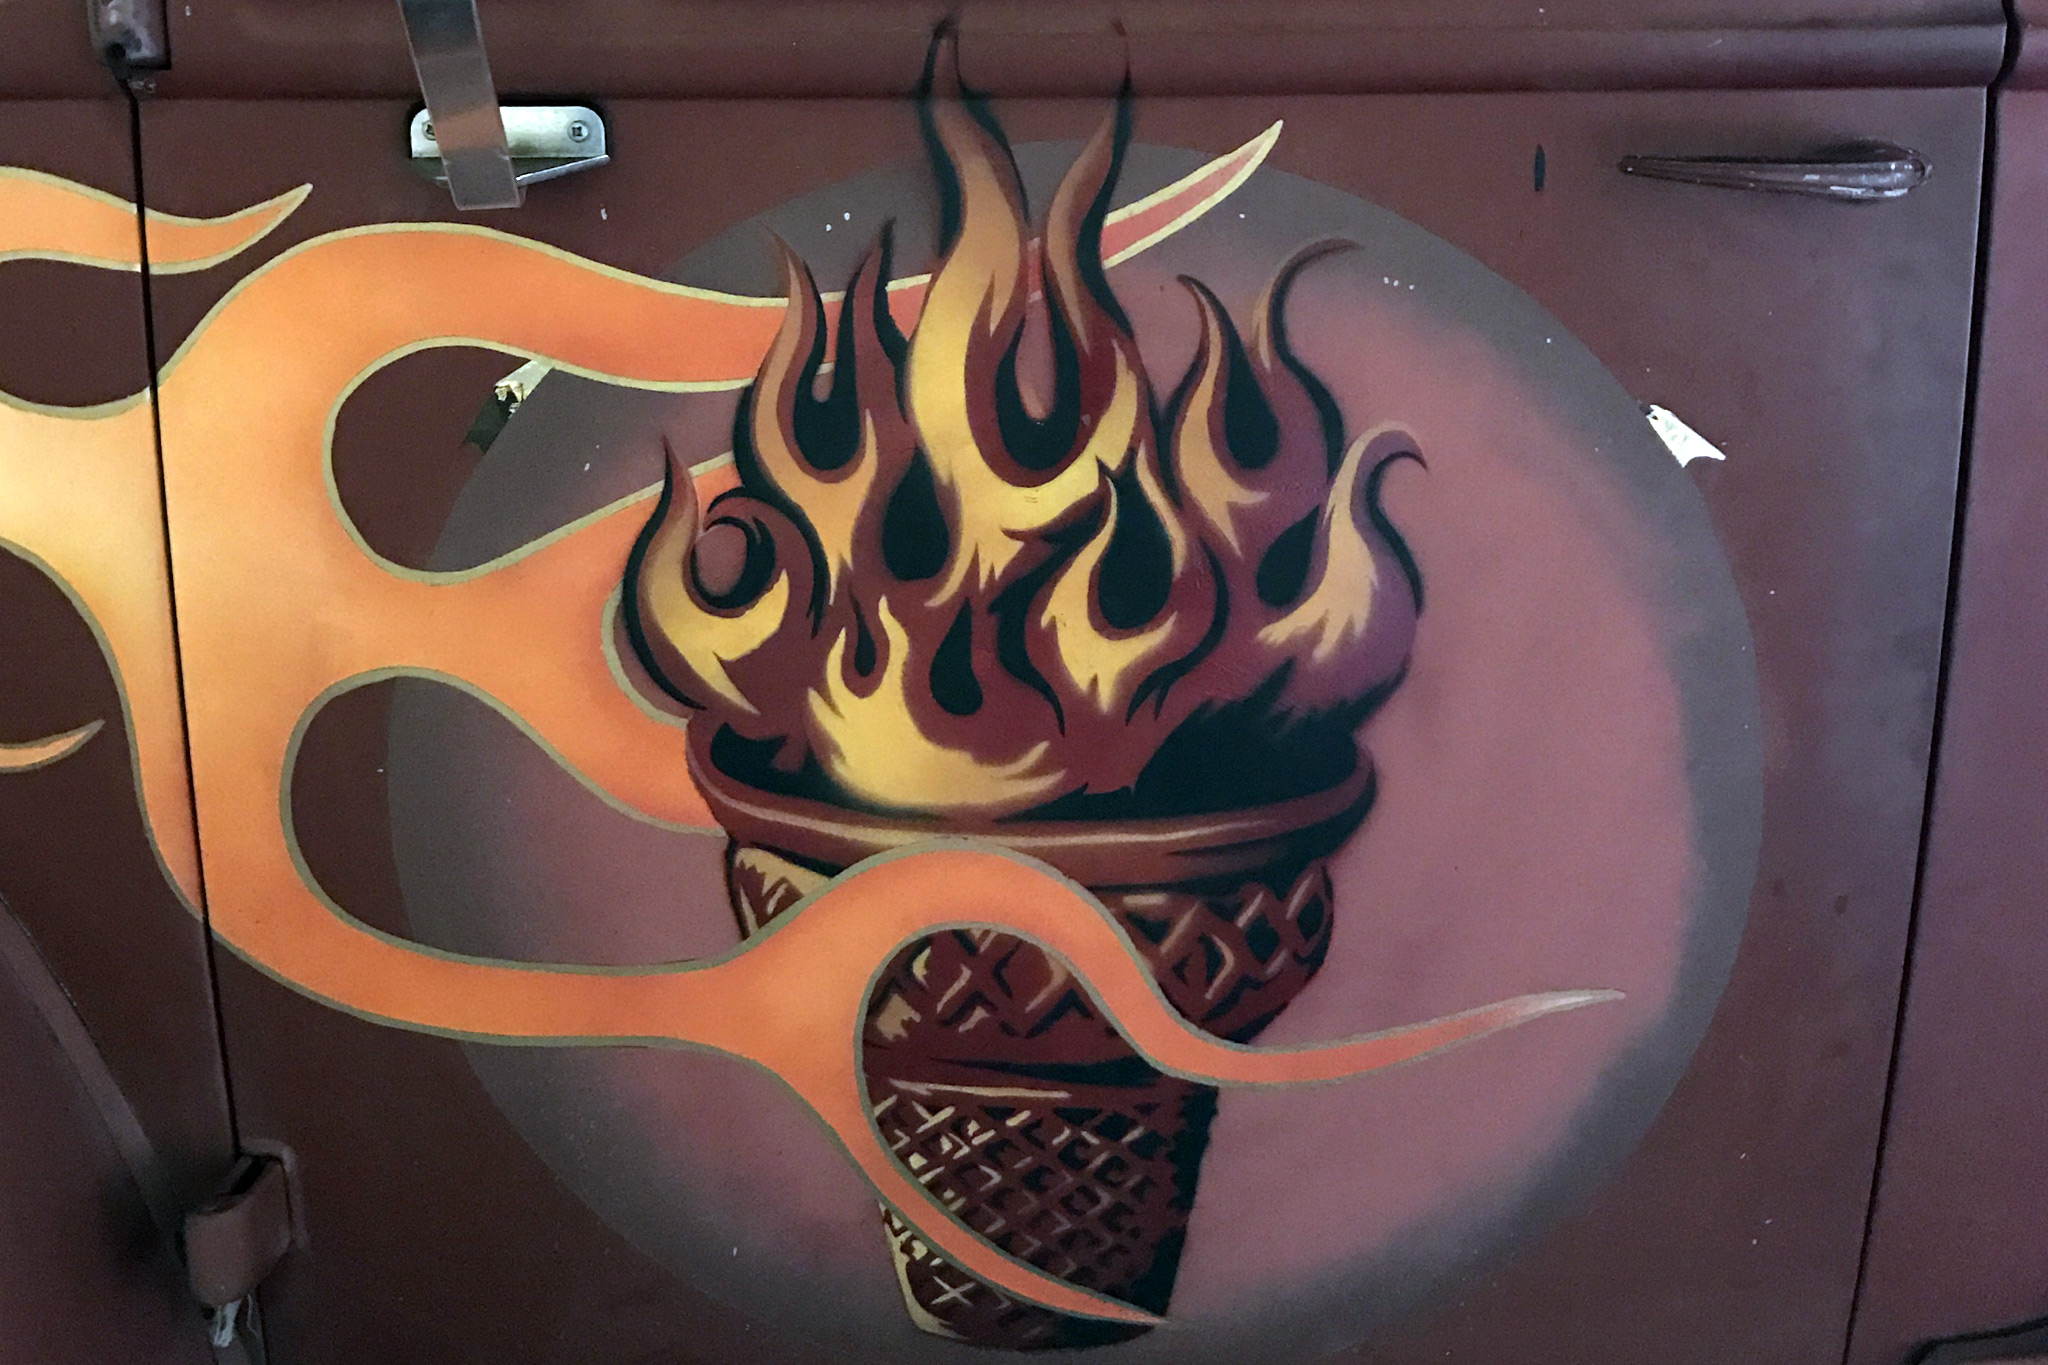 FireAndIceCreamTruckLogo_2048x1365.jpg